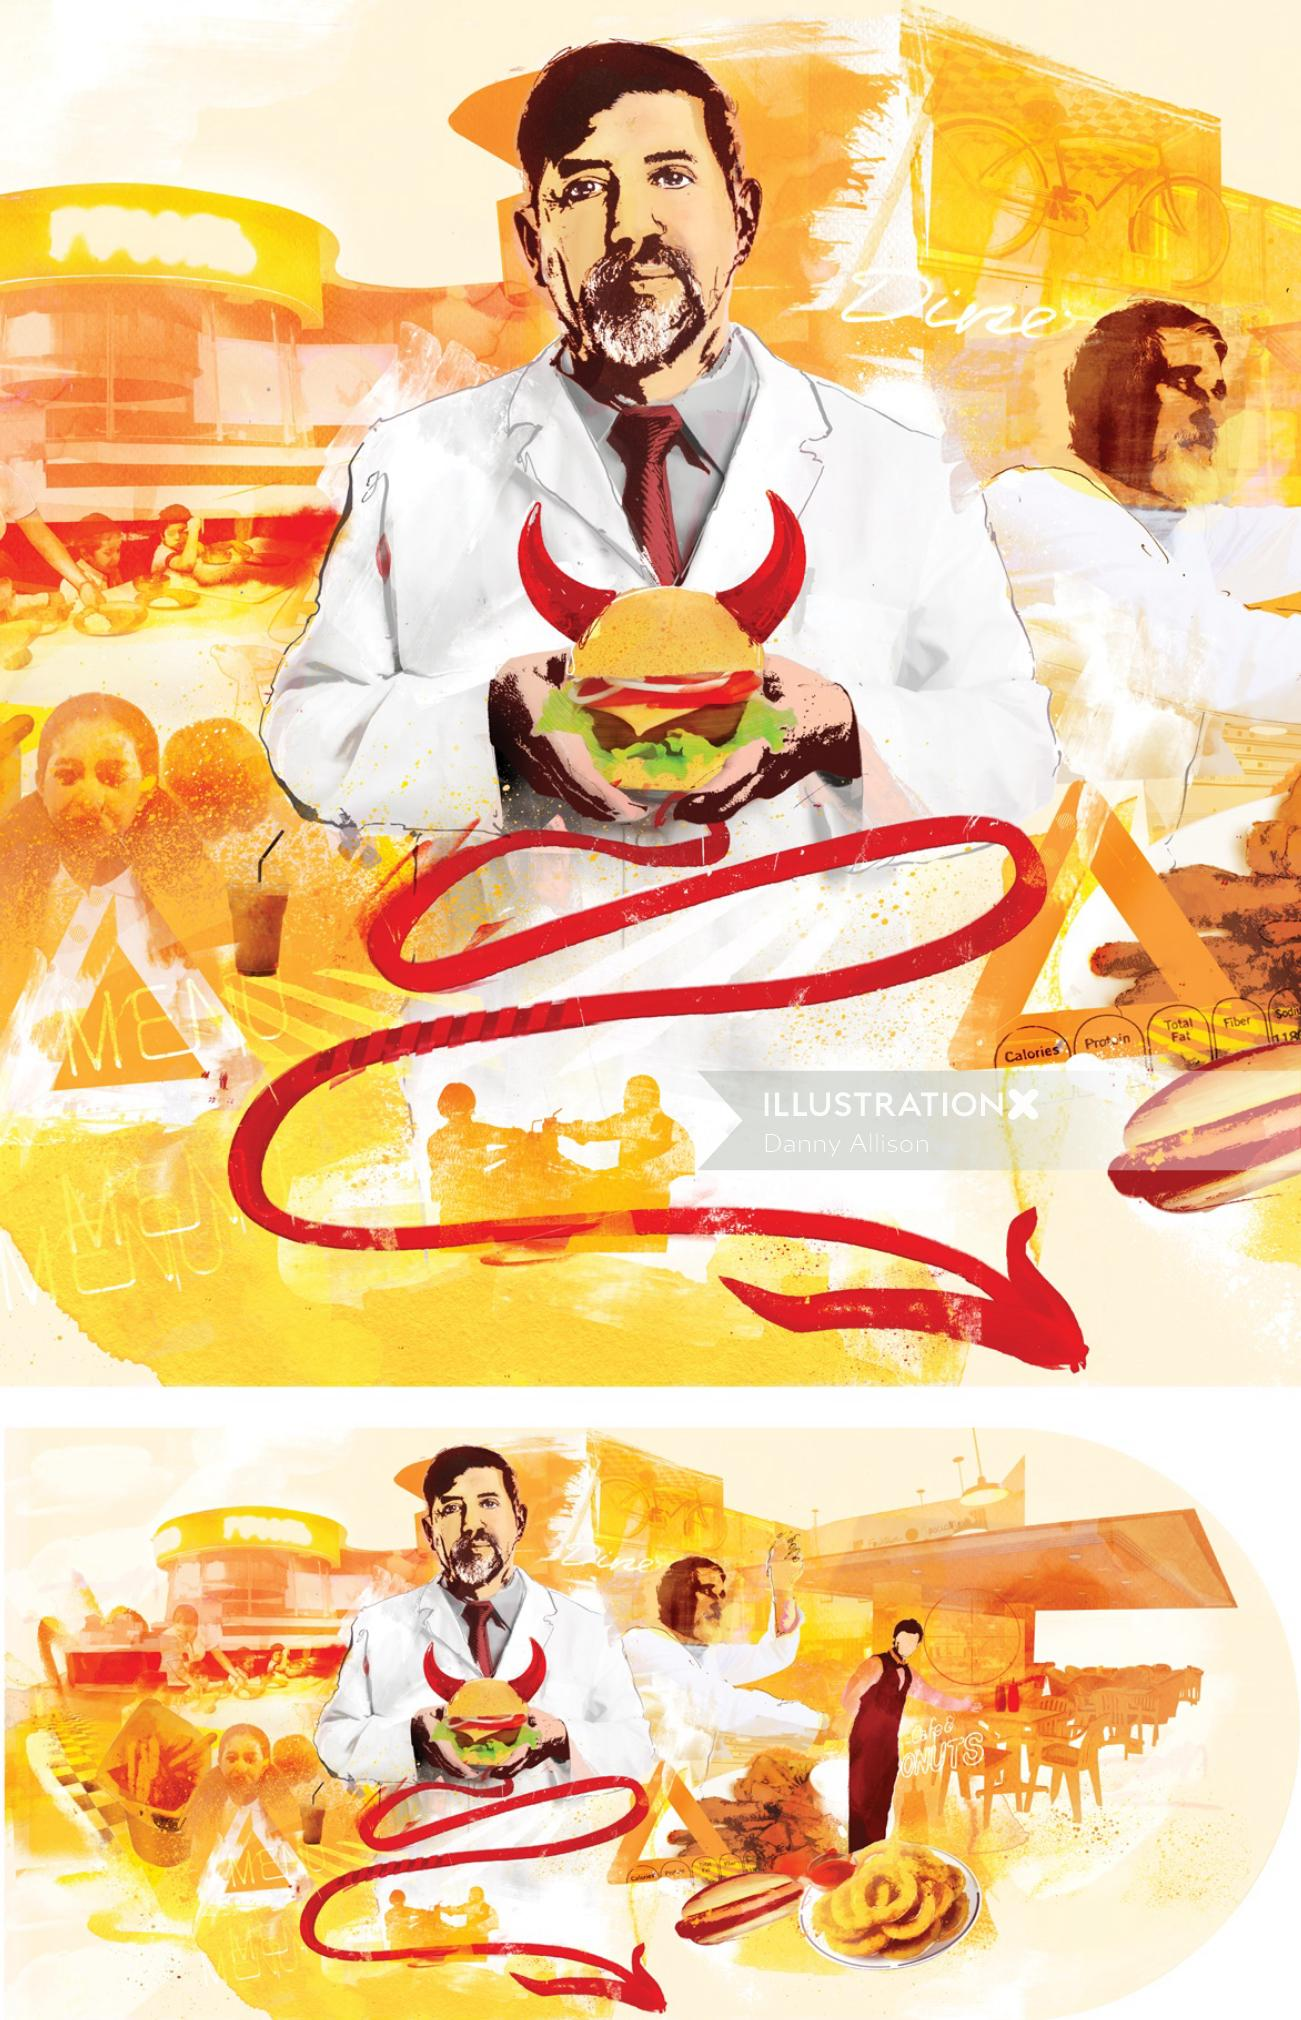 fast food, buger, food, burgers, devil, portrait, eat, horn,